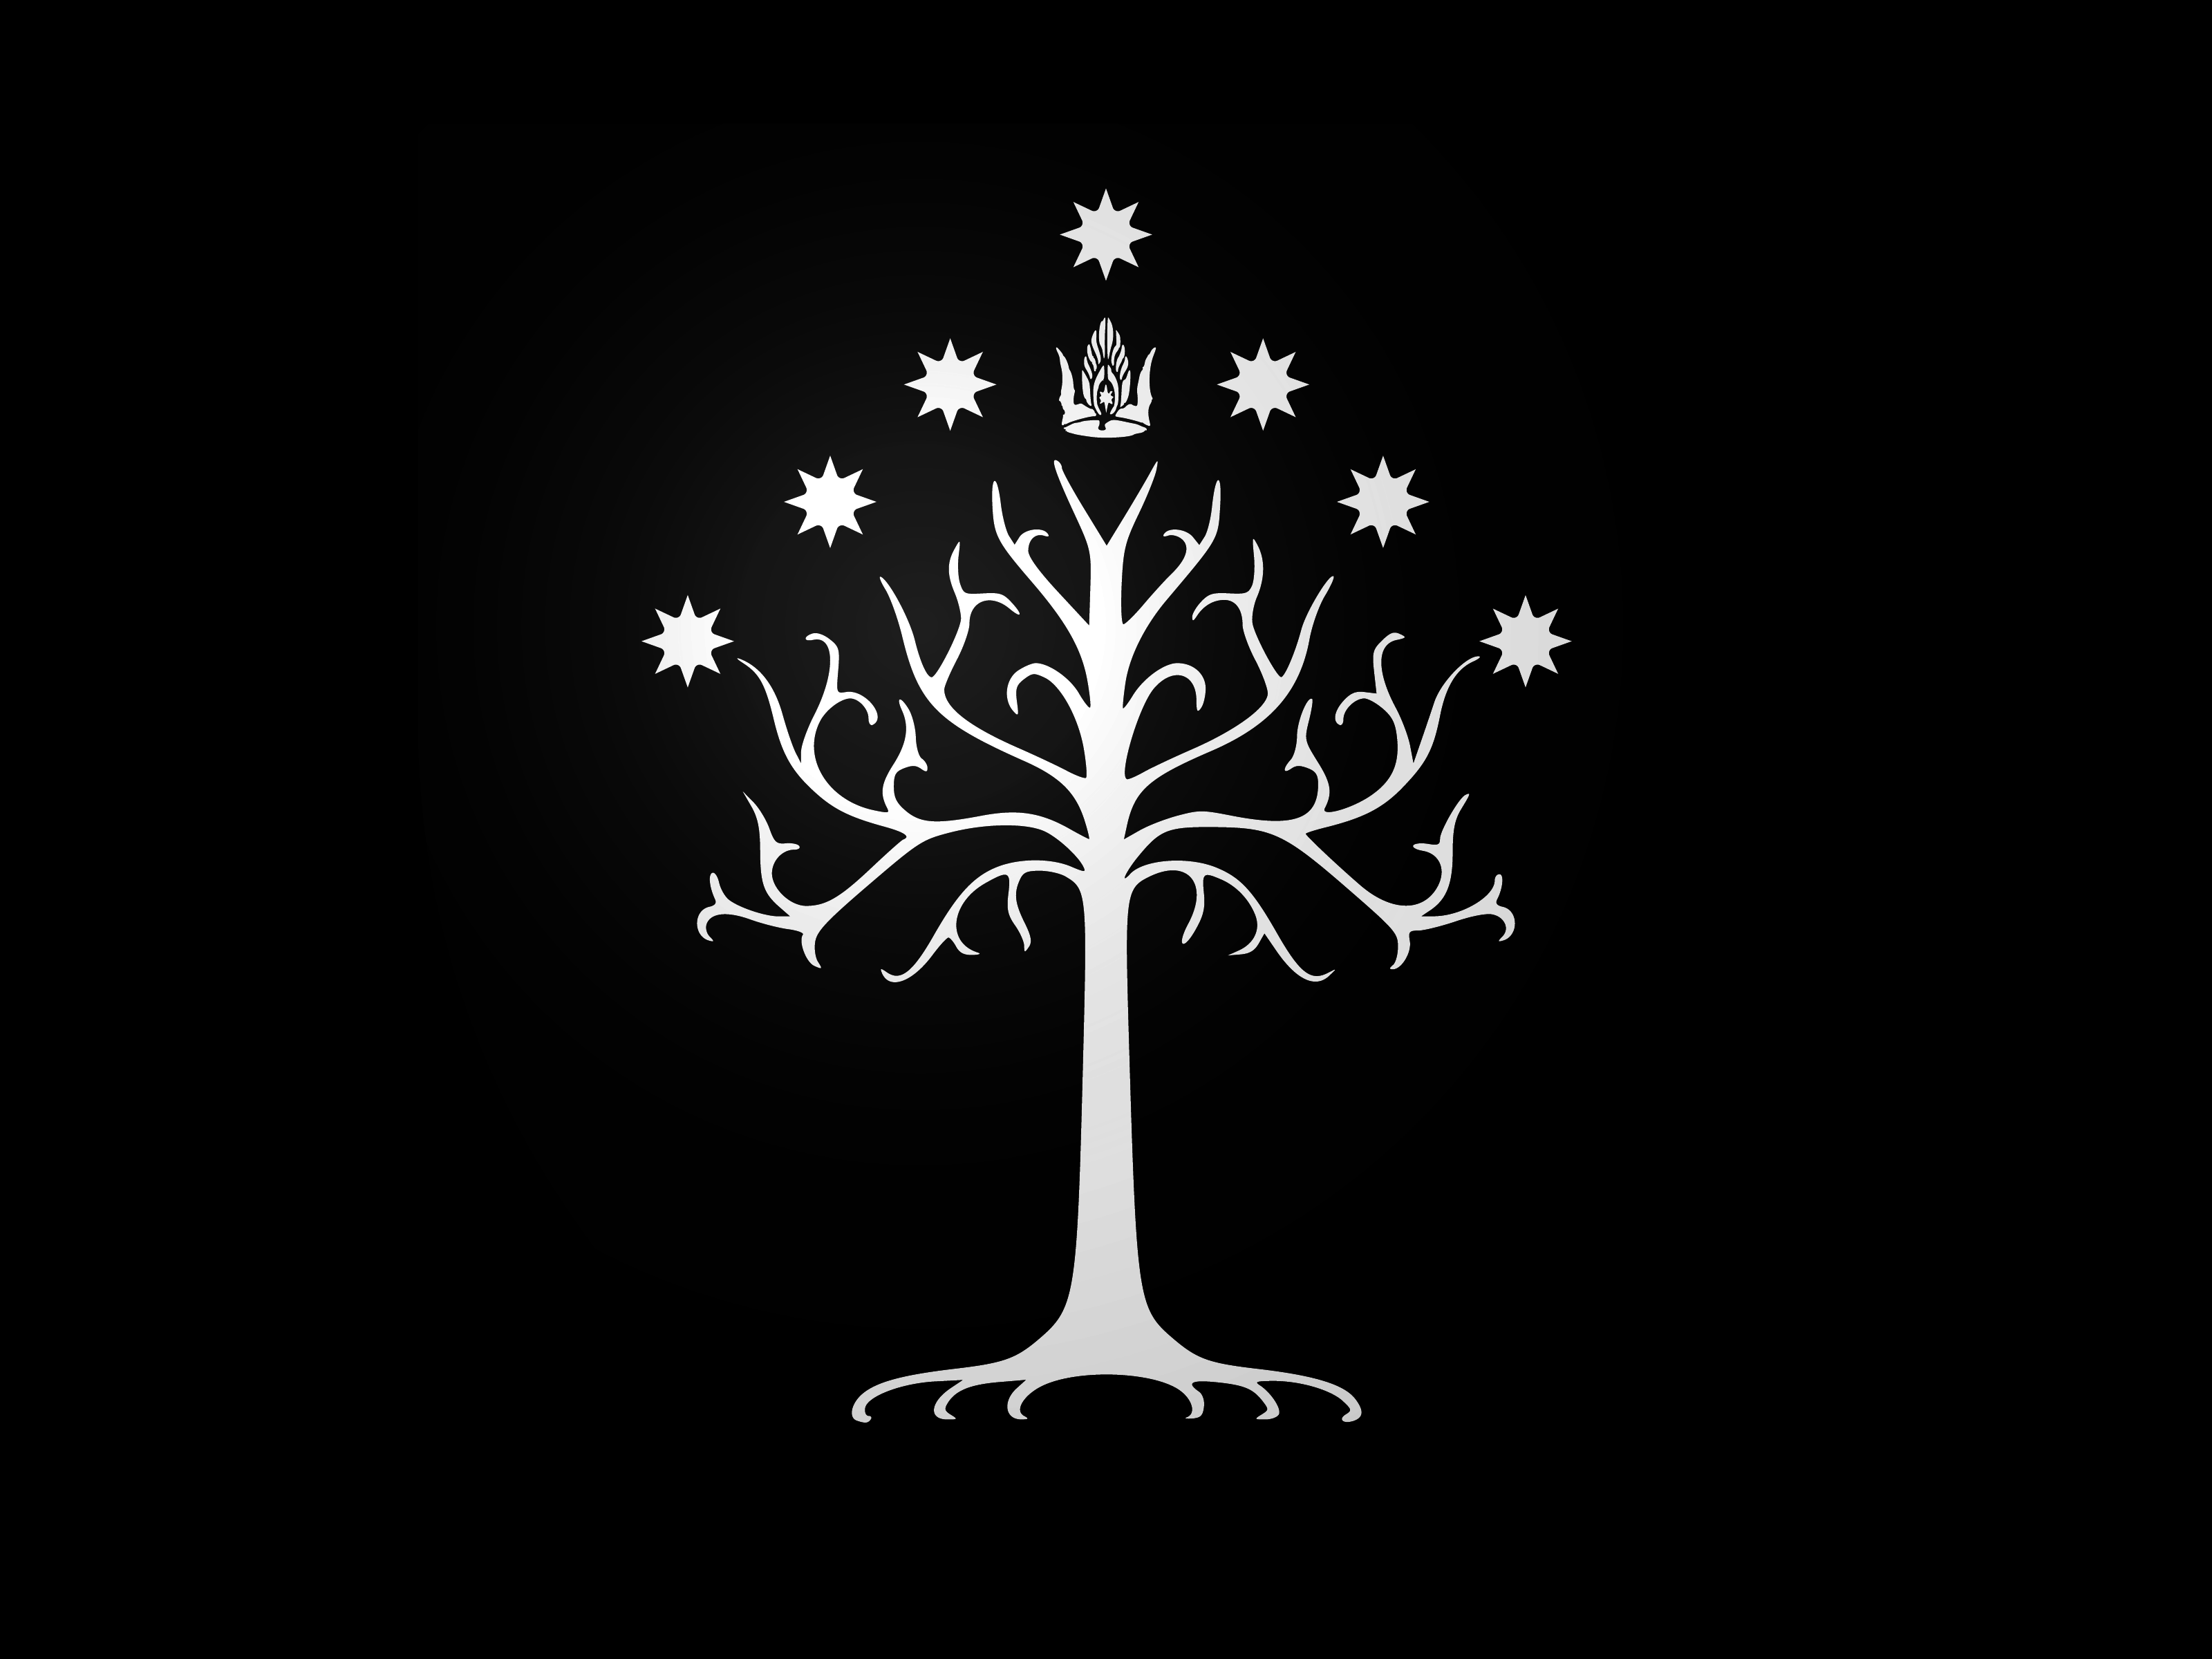 50 White Tree Of Gondor Wallpaper On Wallpapersafari